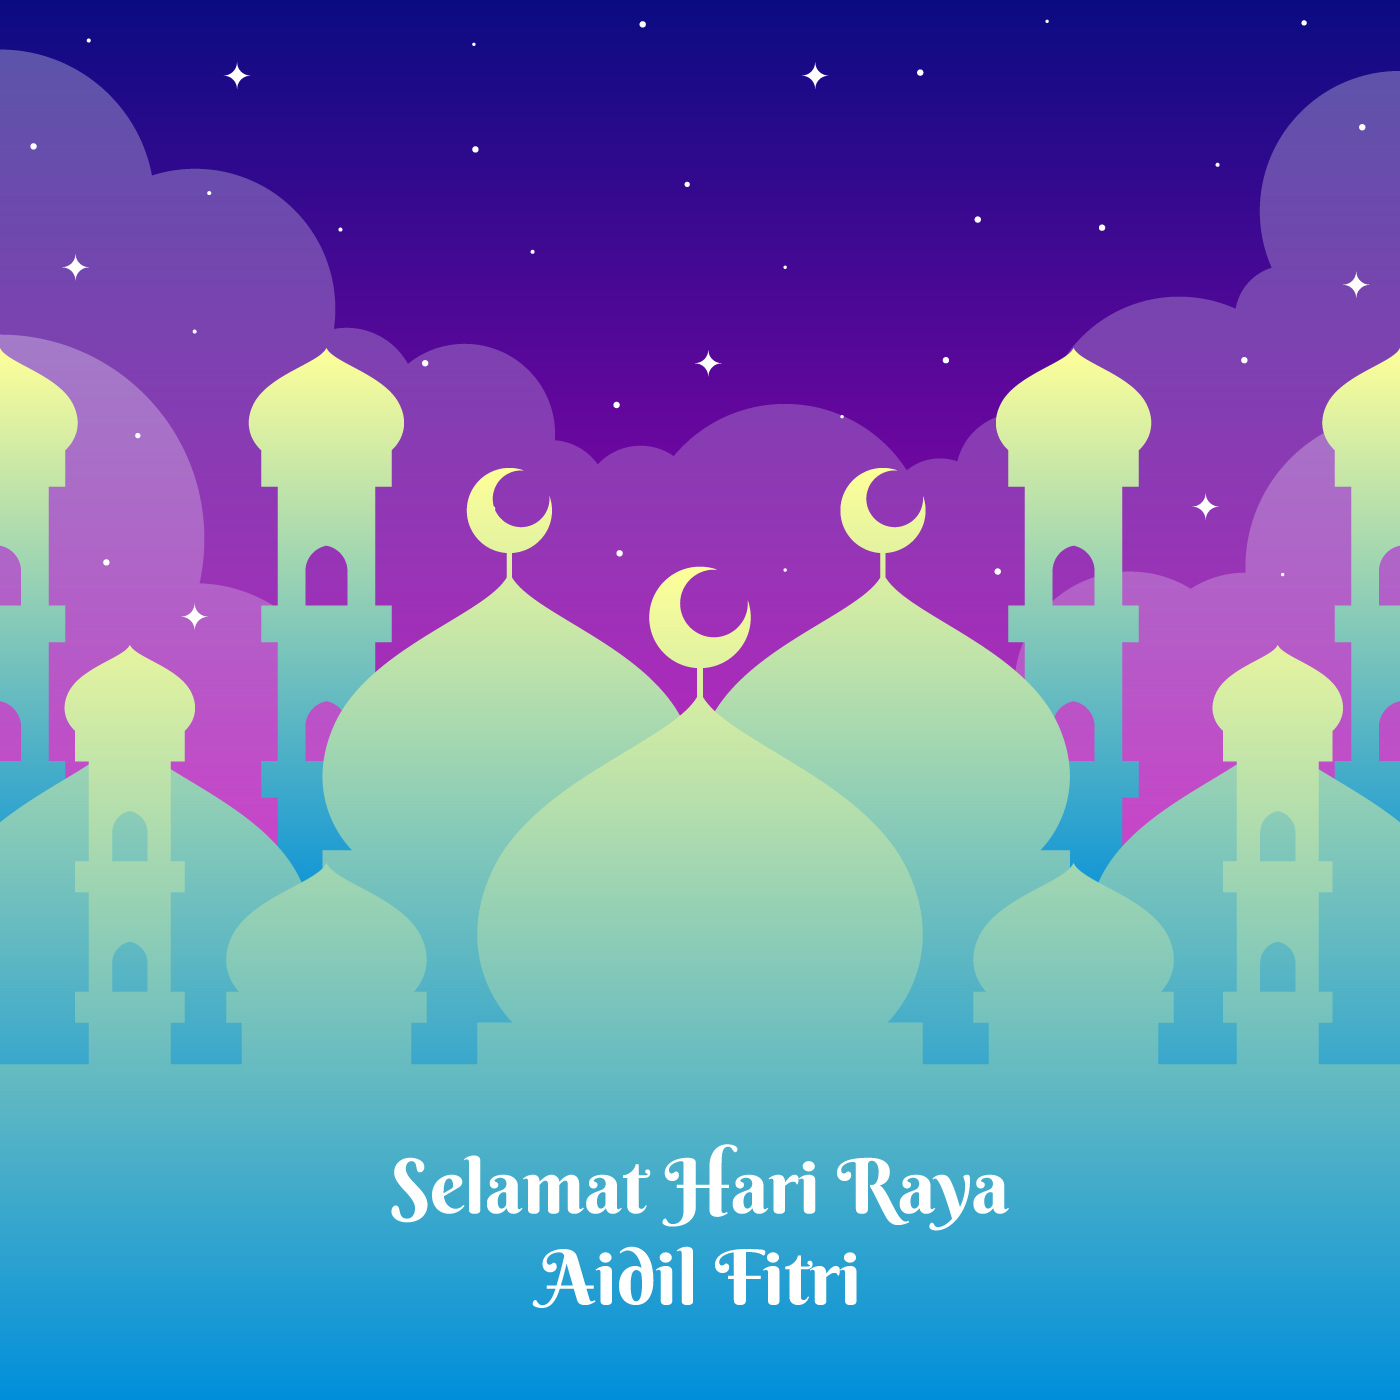 Hari Raya Greetings Template With Mosque Background Download Free Vectors Clipart Graphics Vector Art